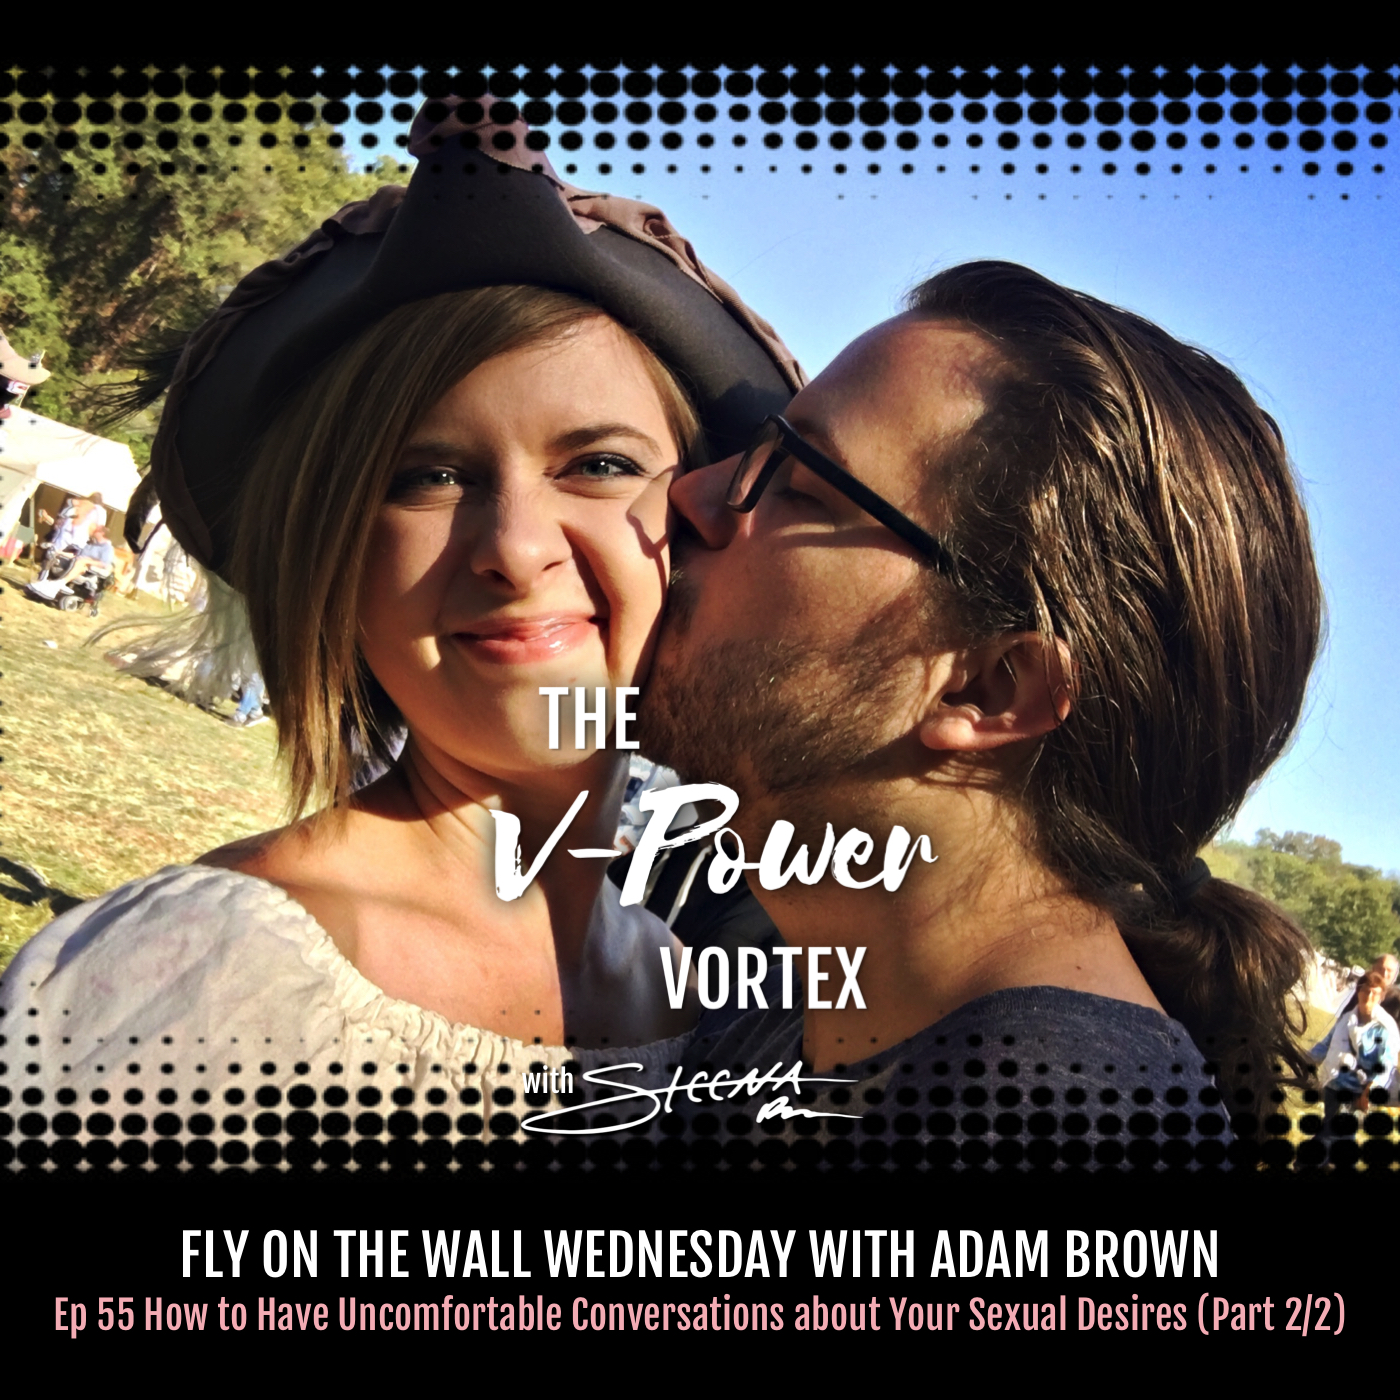 Ep 55 How to Have Uncomfortable Conversations about Your Sexual Desires - Fly on the Wall Wednesday with Adam Brown (Part 2 of 2).jpeg